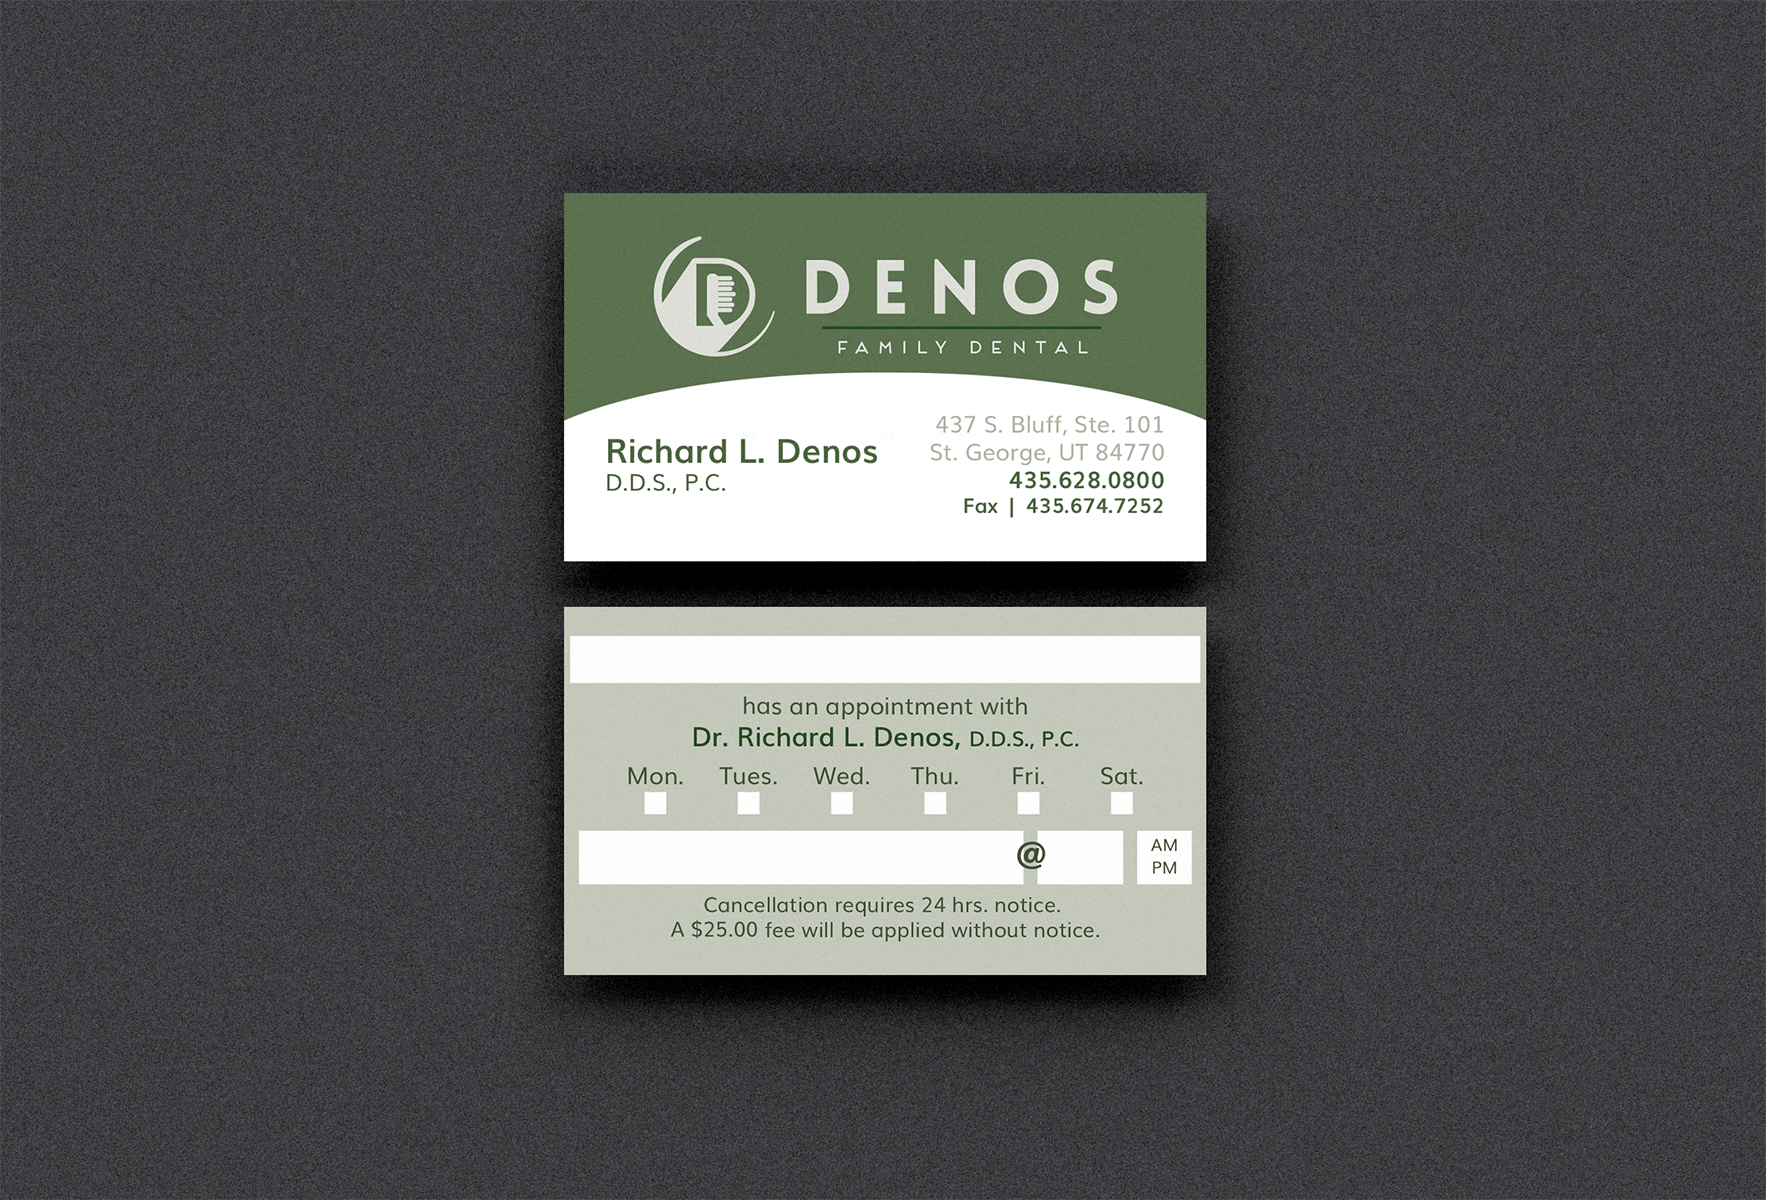 Business cards st george utah images card design and card template denos family dentistry tenth muse design previous reheart images reheart Image collections